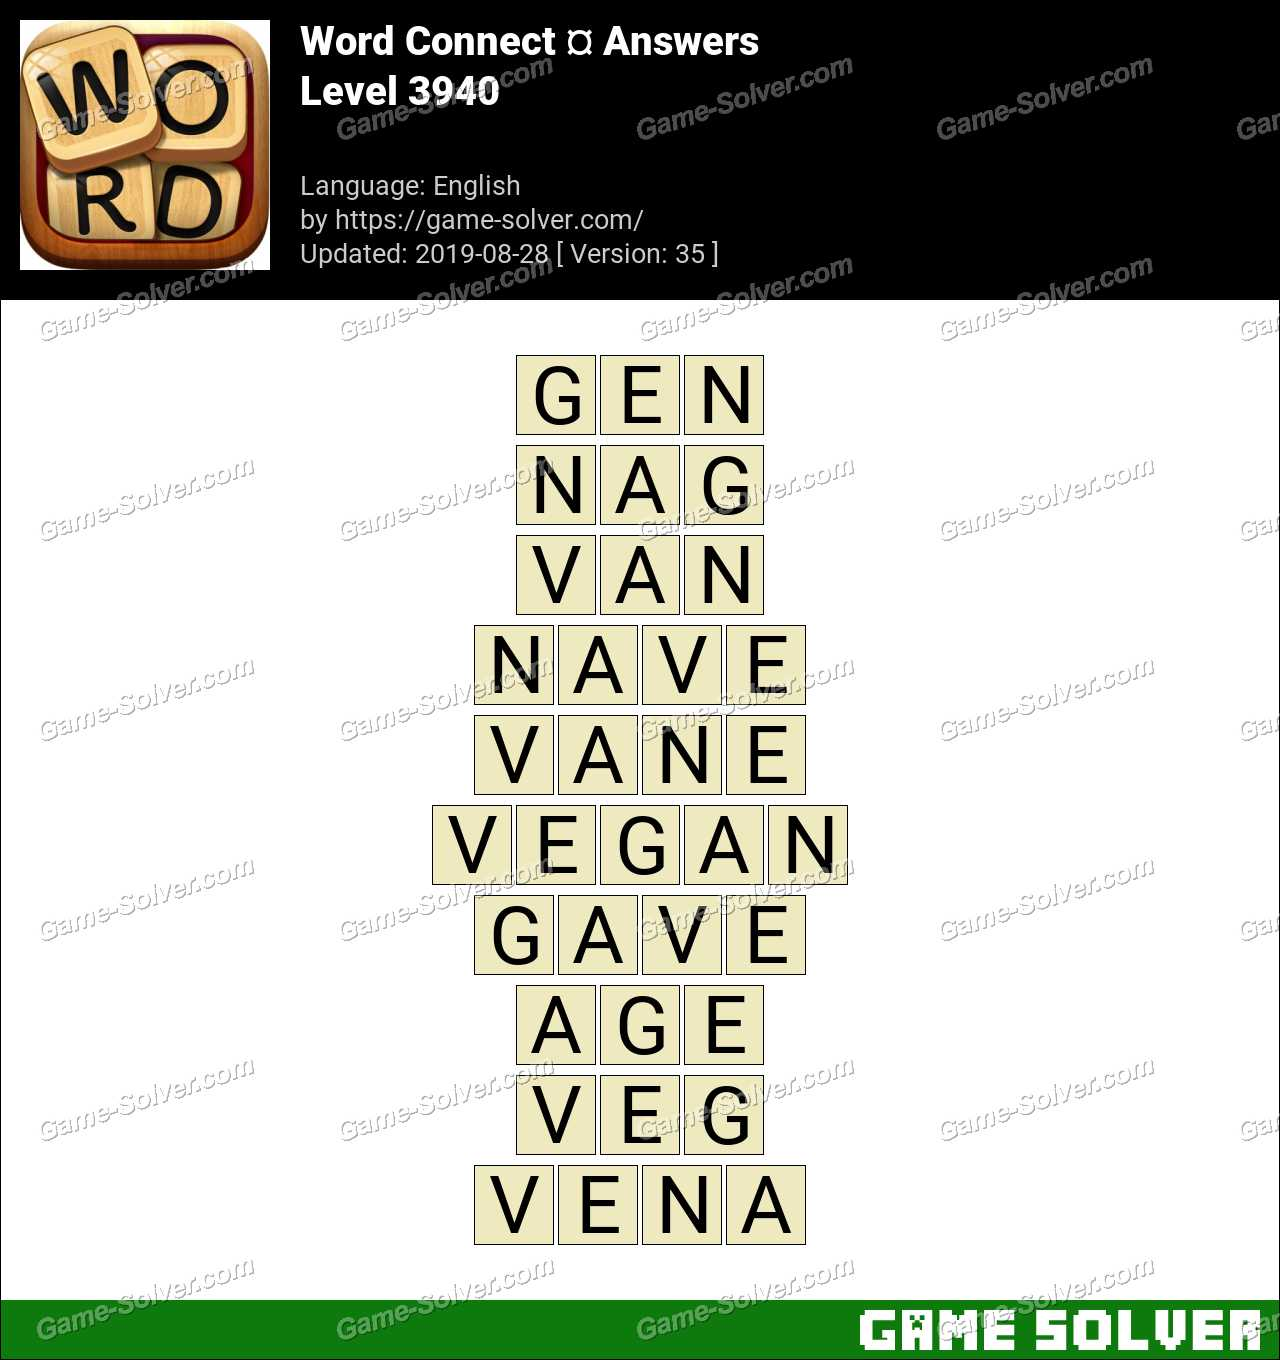 Word Connect Level 3940 Answers